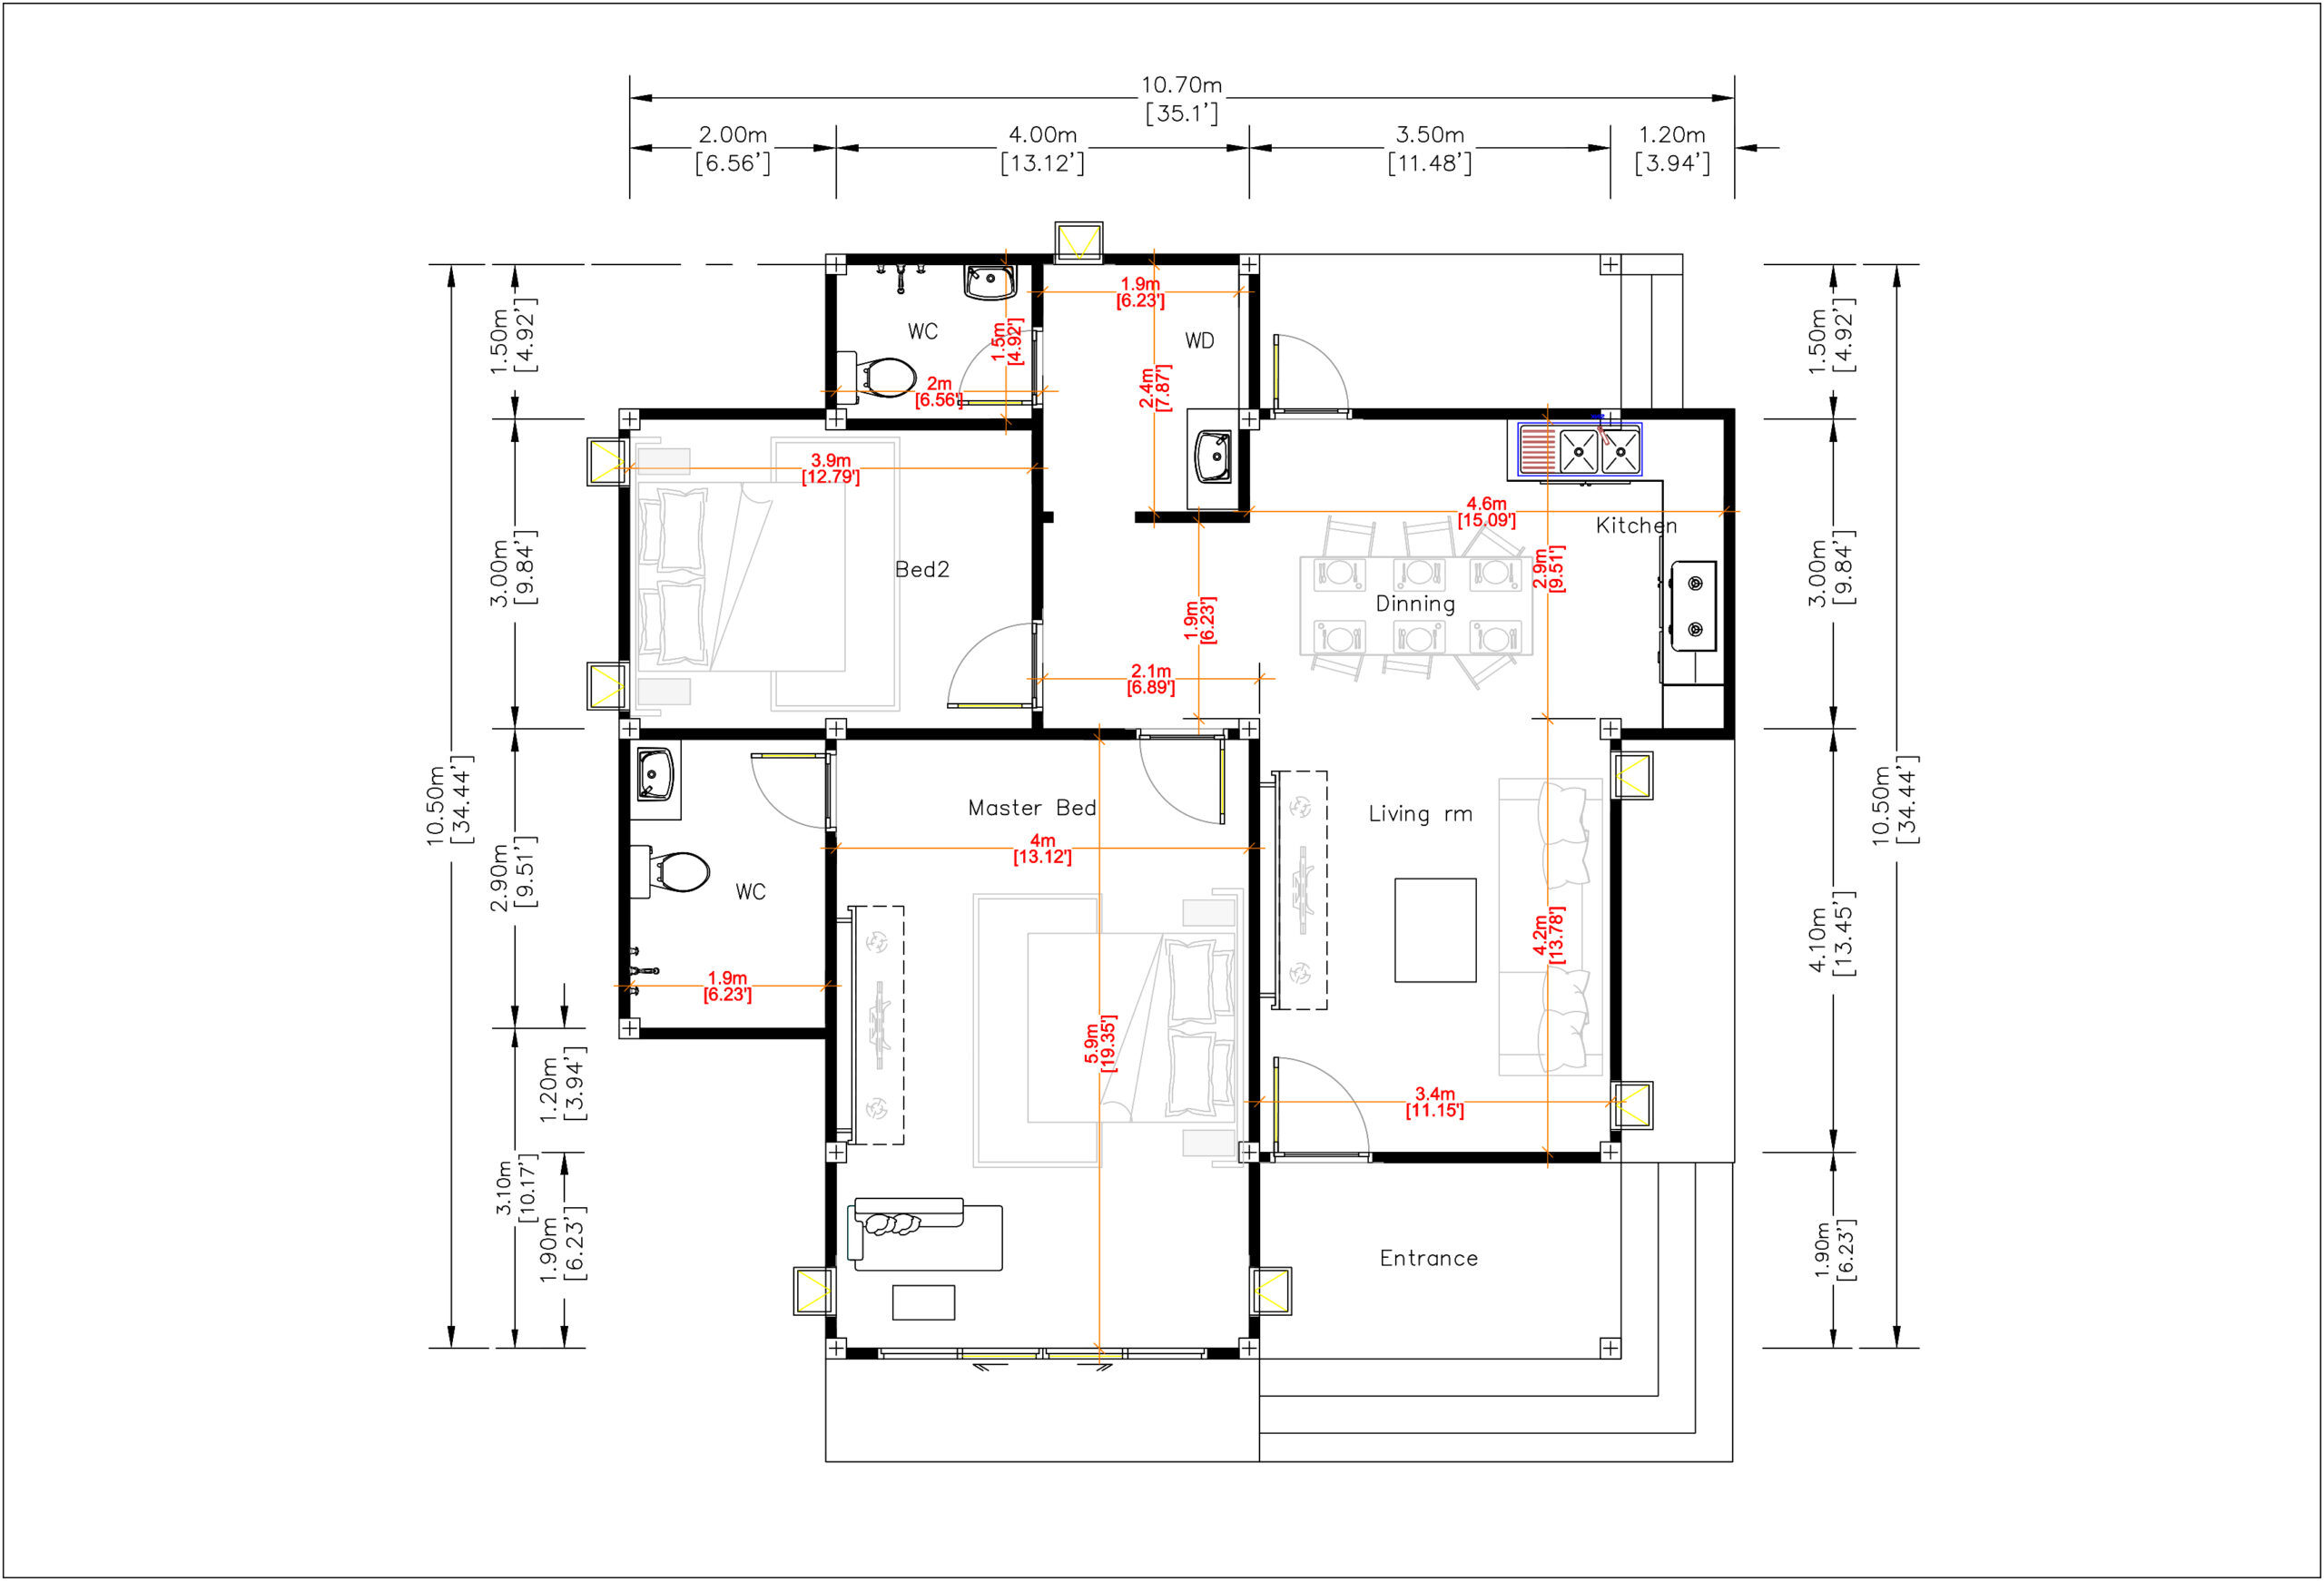 House Plans 10.7x10.5 ground floor planv